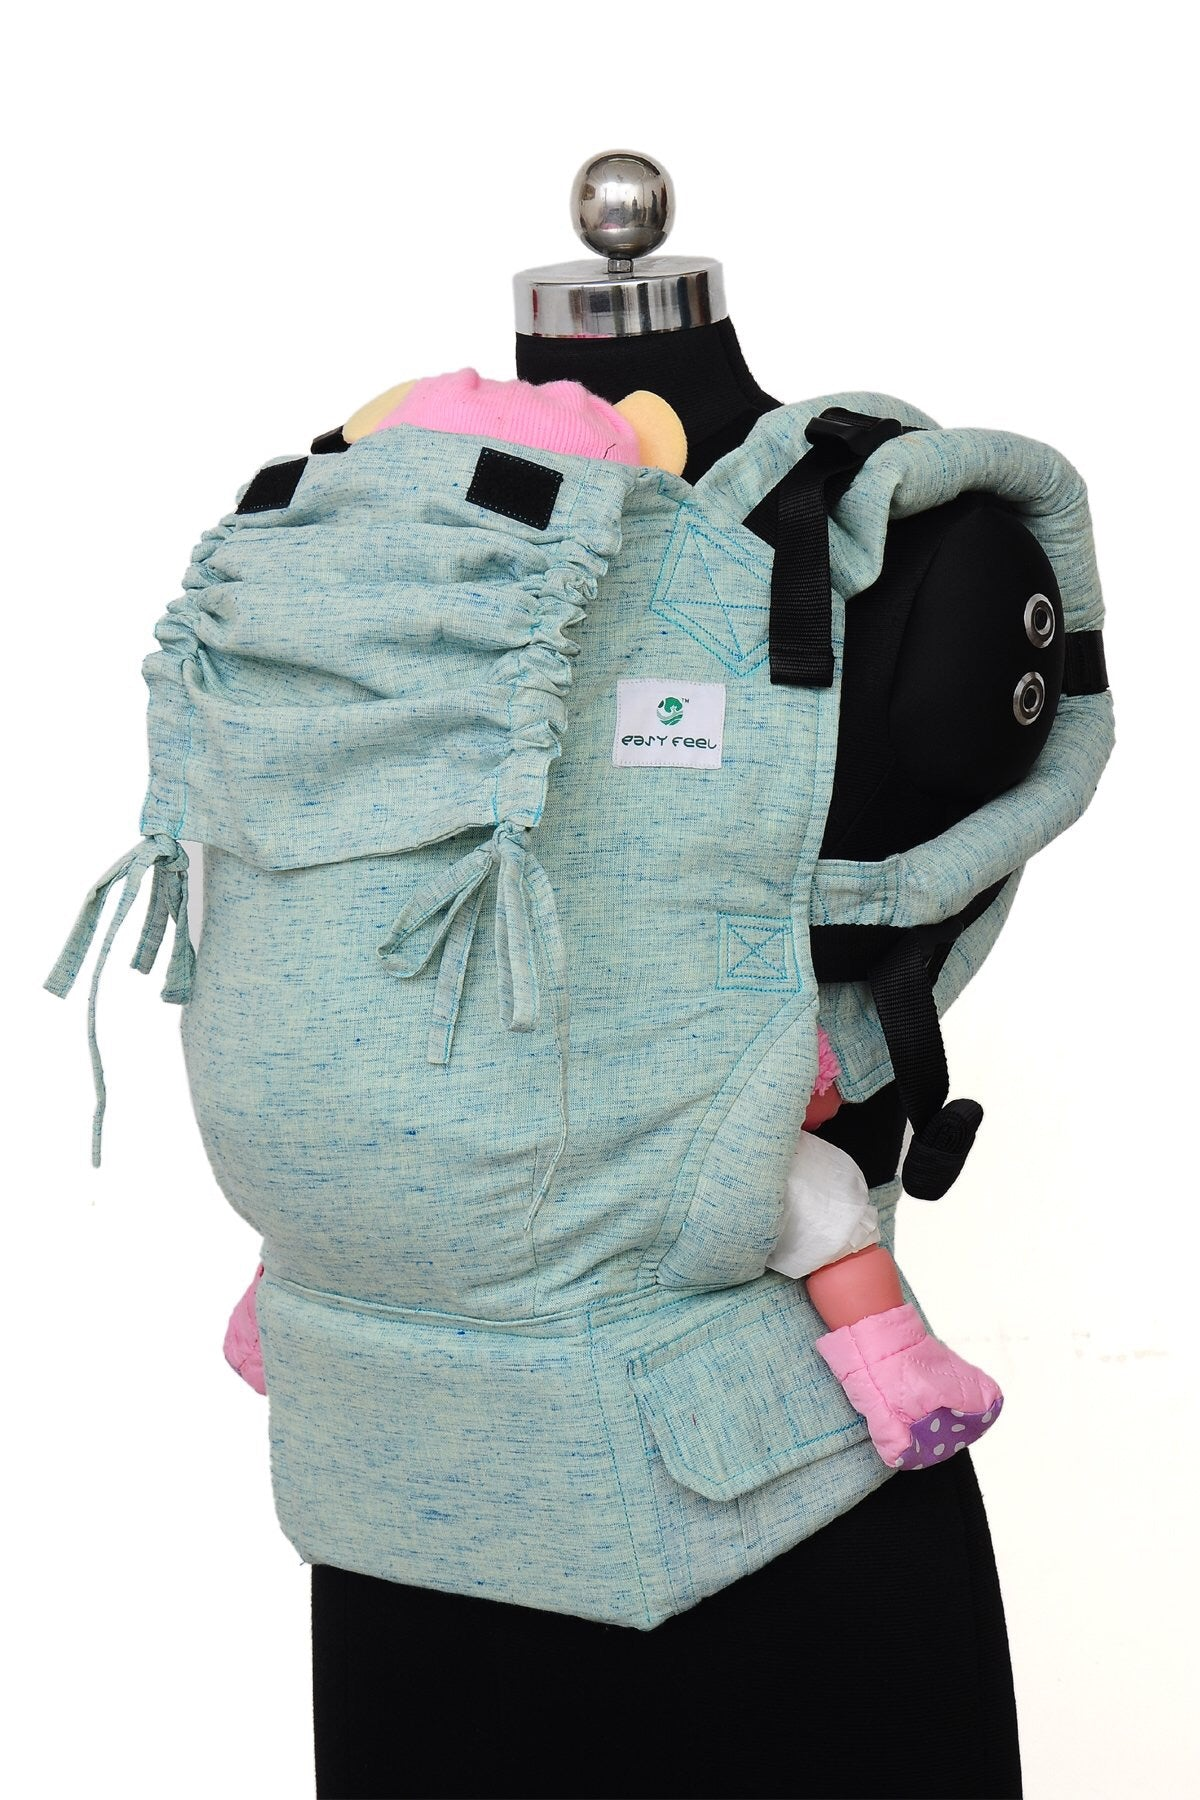 08d8d381f41 Easy Feel - Full Buckle Ergonomic Soft Structured Carrier (Preschool Size)  - Ocean